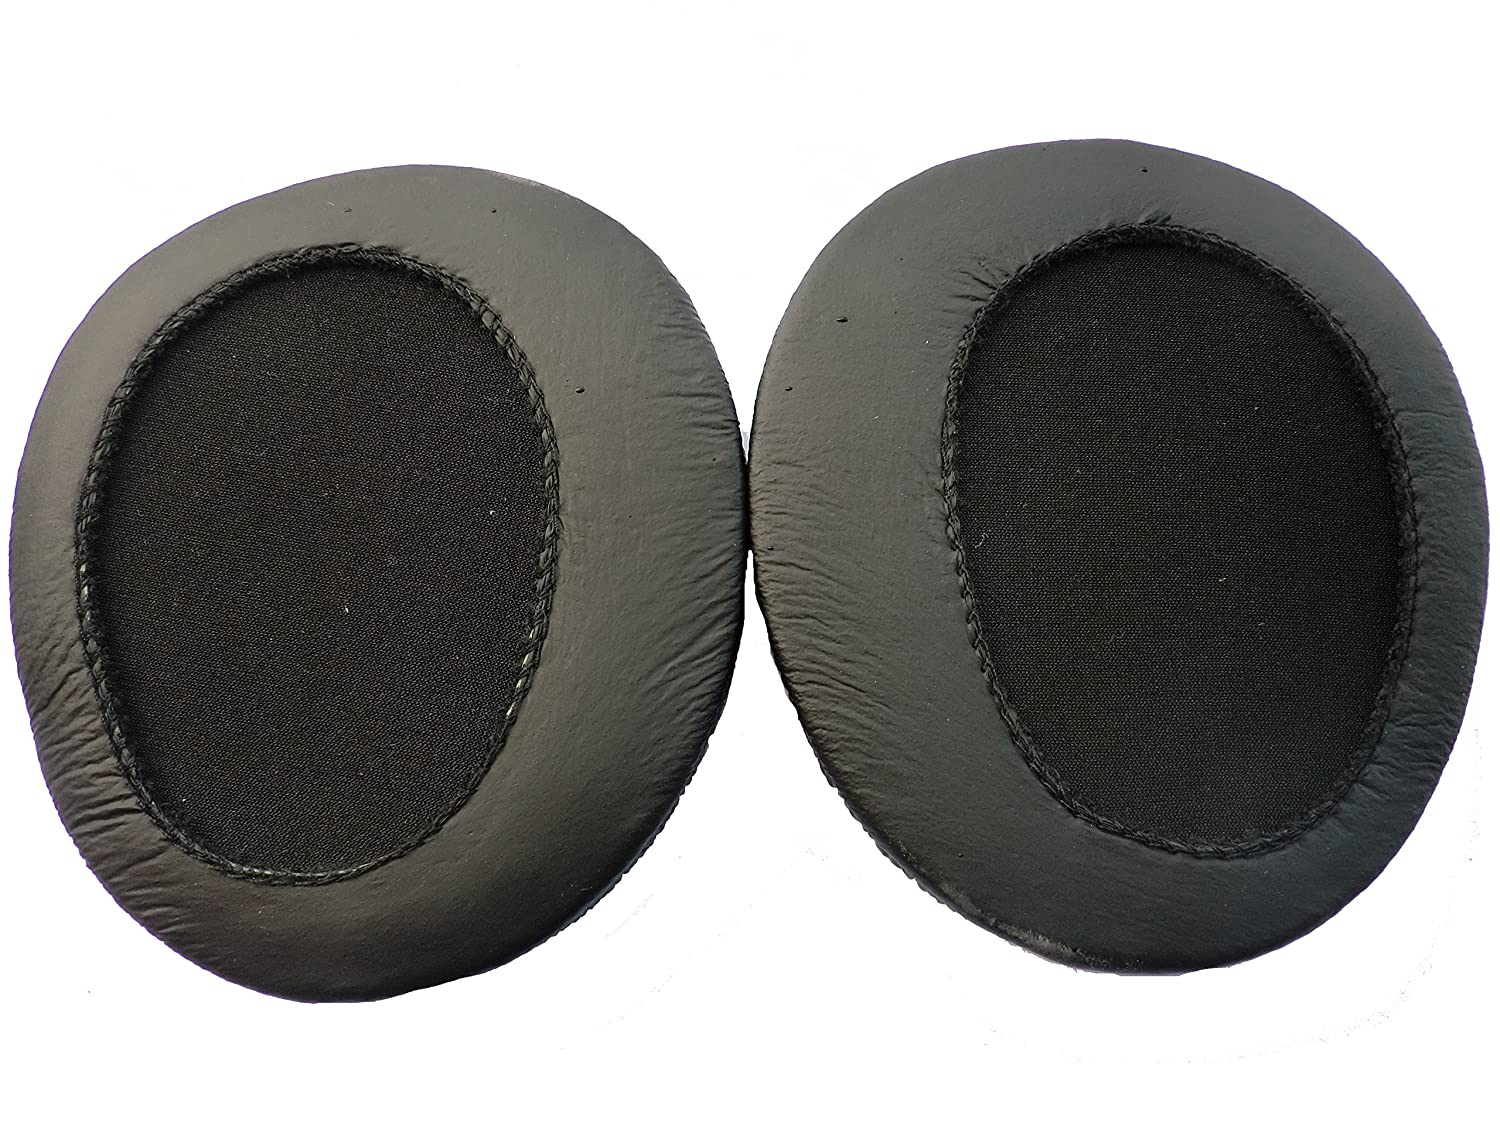 6e5733b0cf8 Amazon.com: Headphone Ear Pads Replacement for Sony MDR-V600 MDR-V900 Z600  7509: Home Audio & Theater